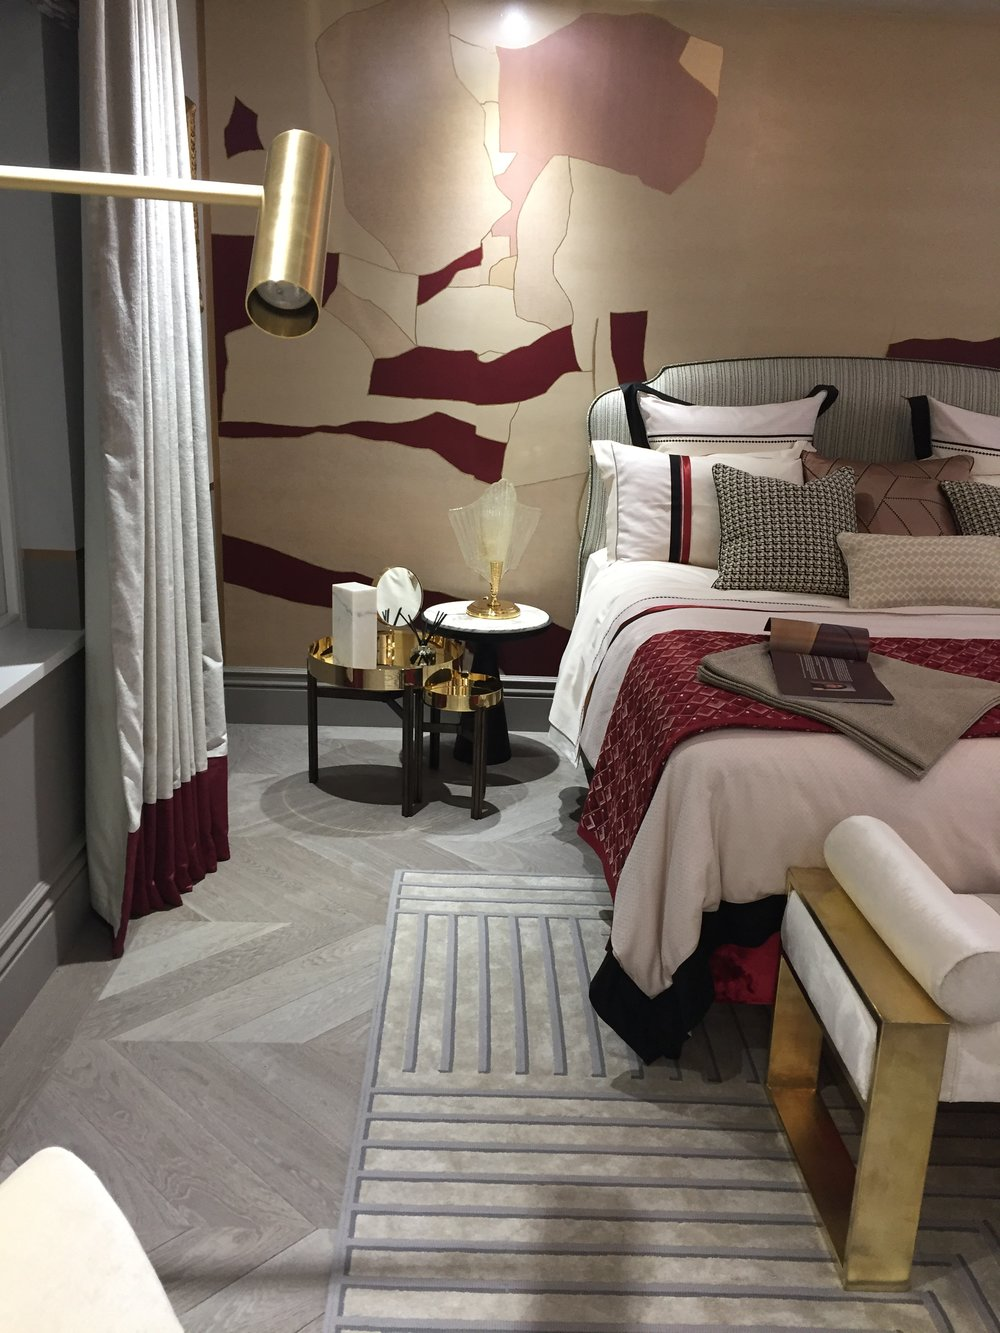 Holiday House London, An Interior Design Event With A Cause - Shalini Misra Bedroom.JPG